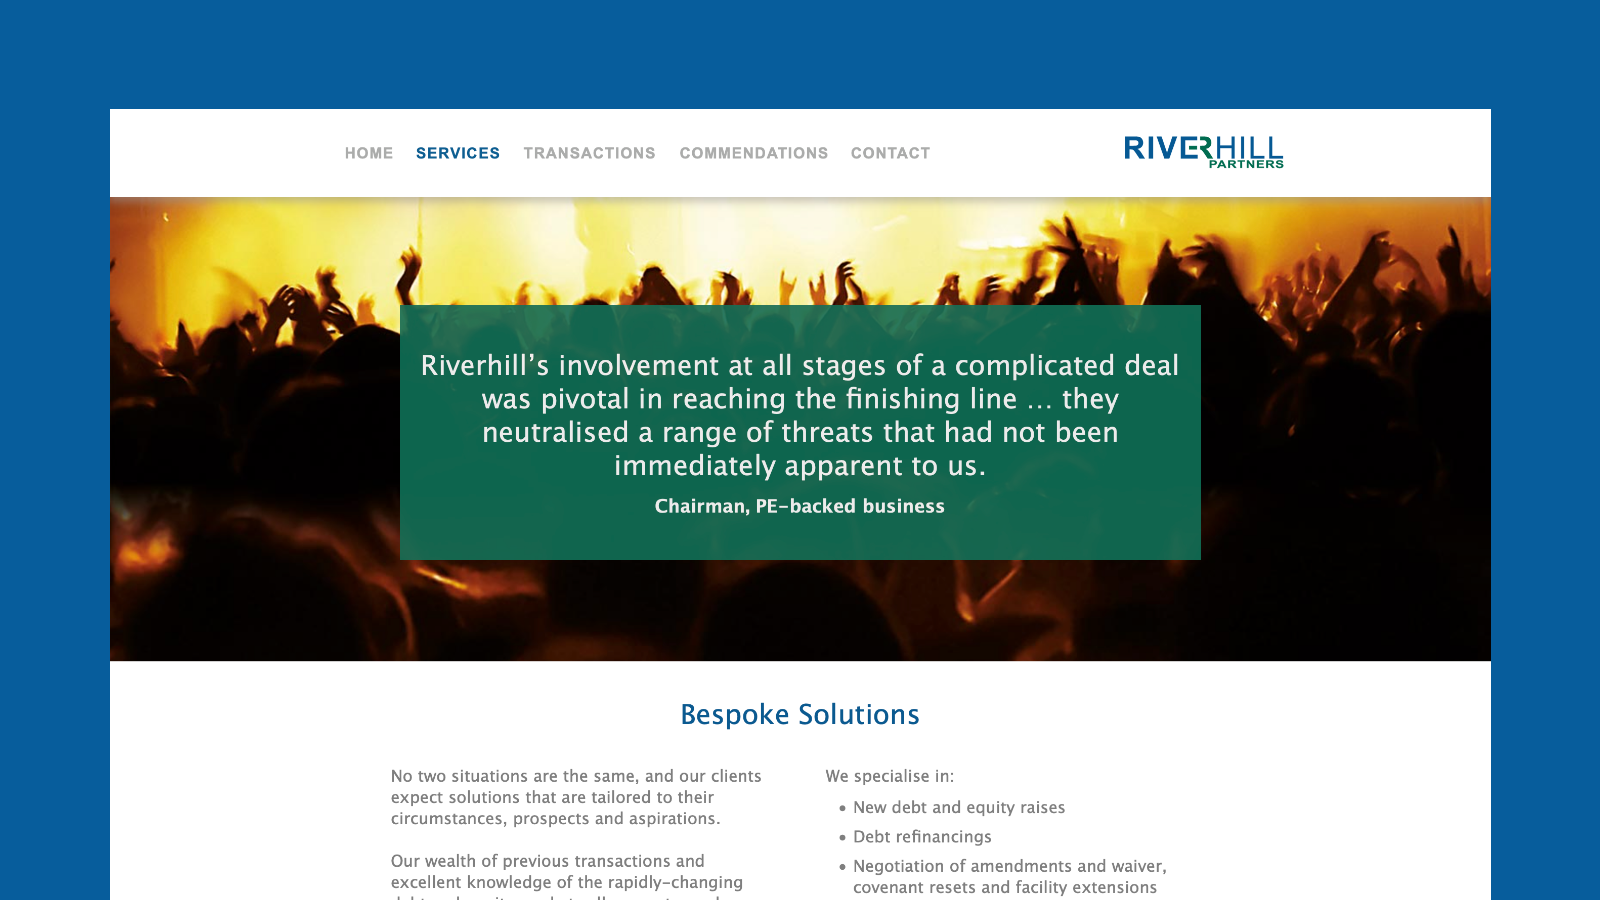 Riverhill Partners Services screen